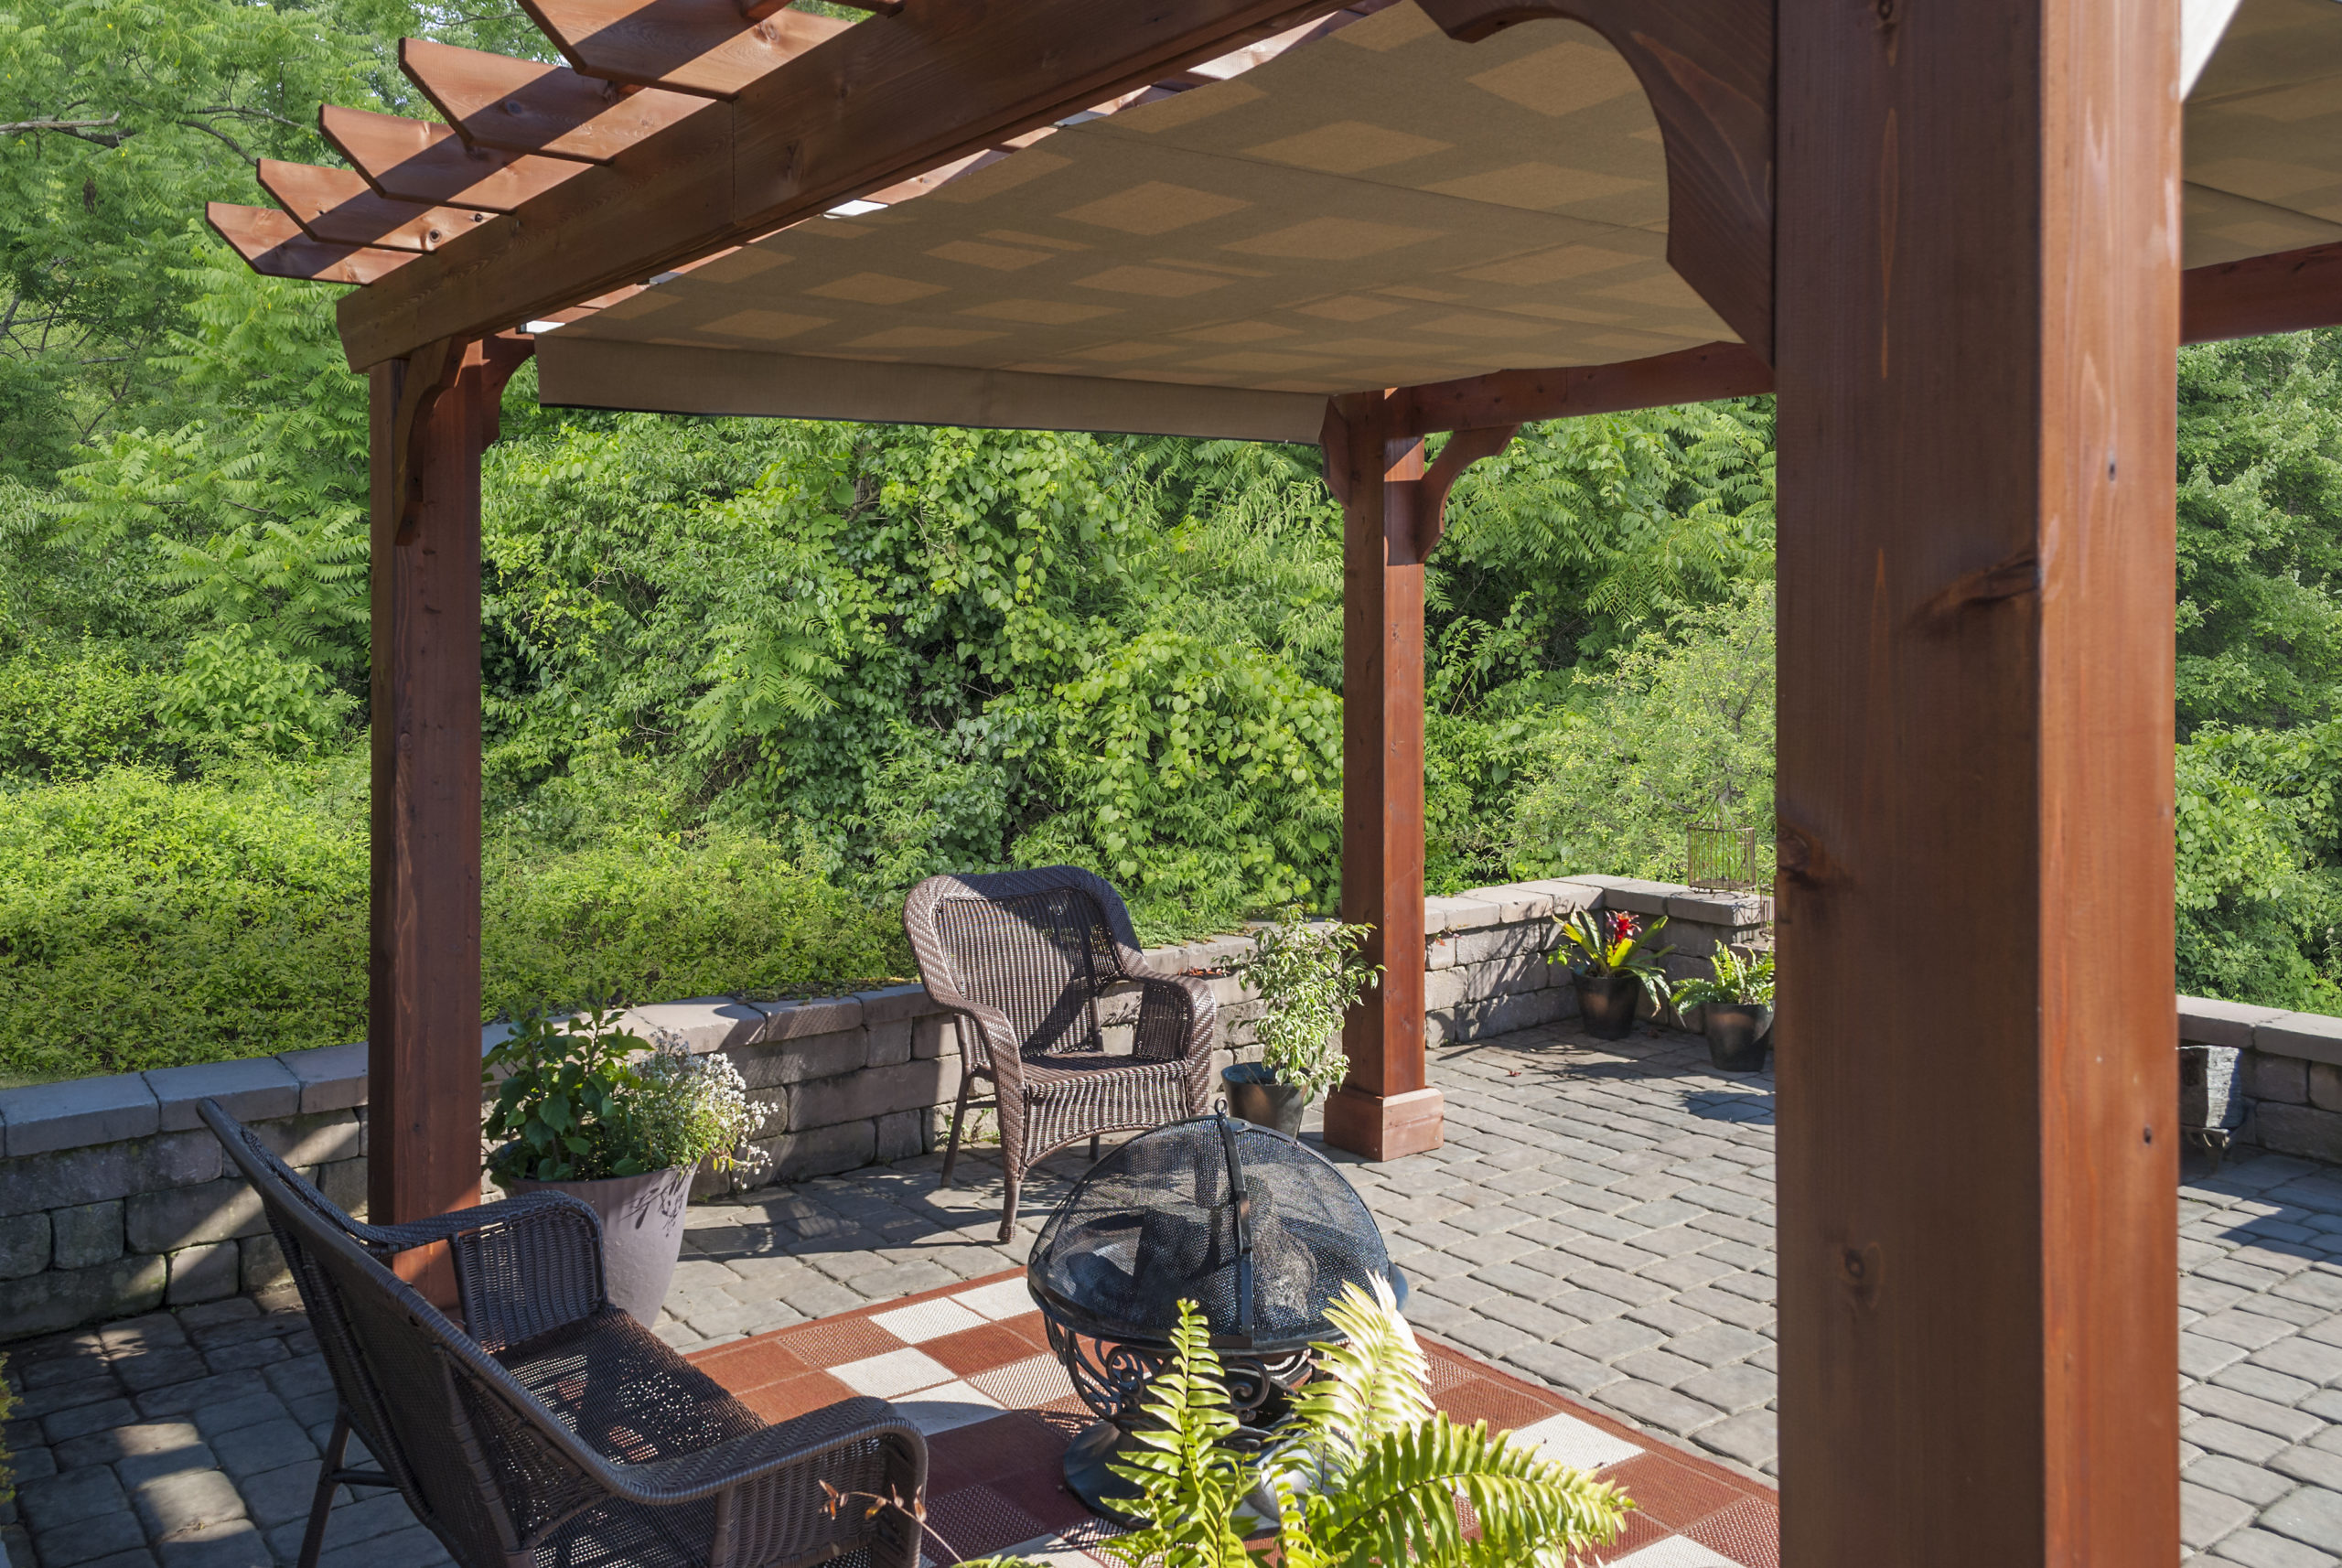 Wooden pergola with an EZShade canopy.